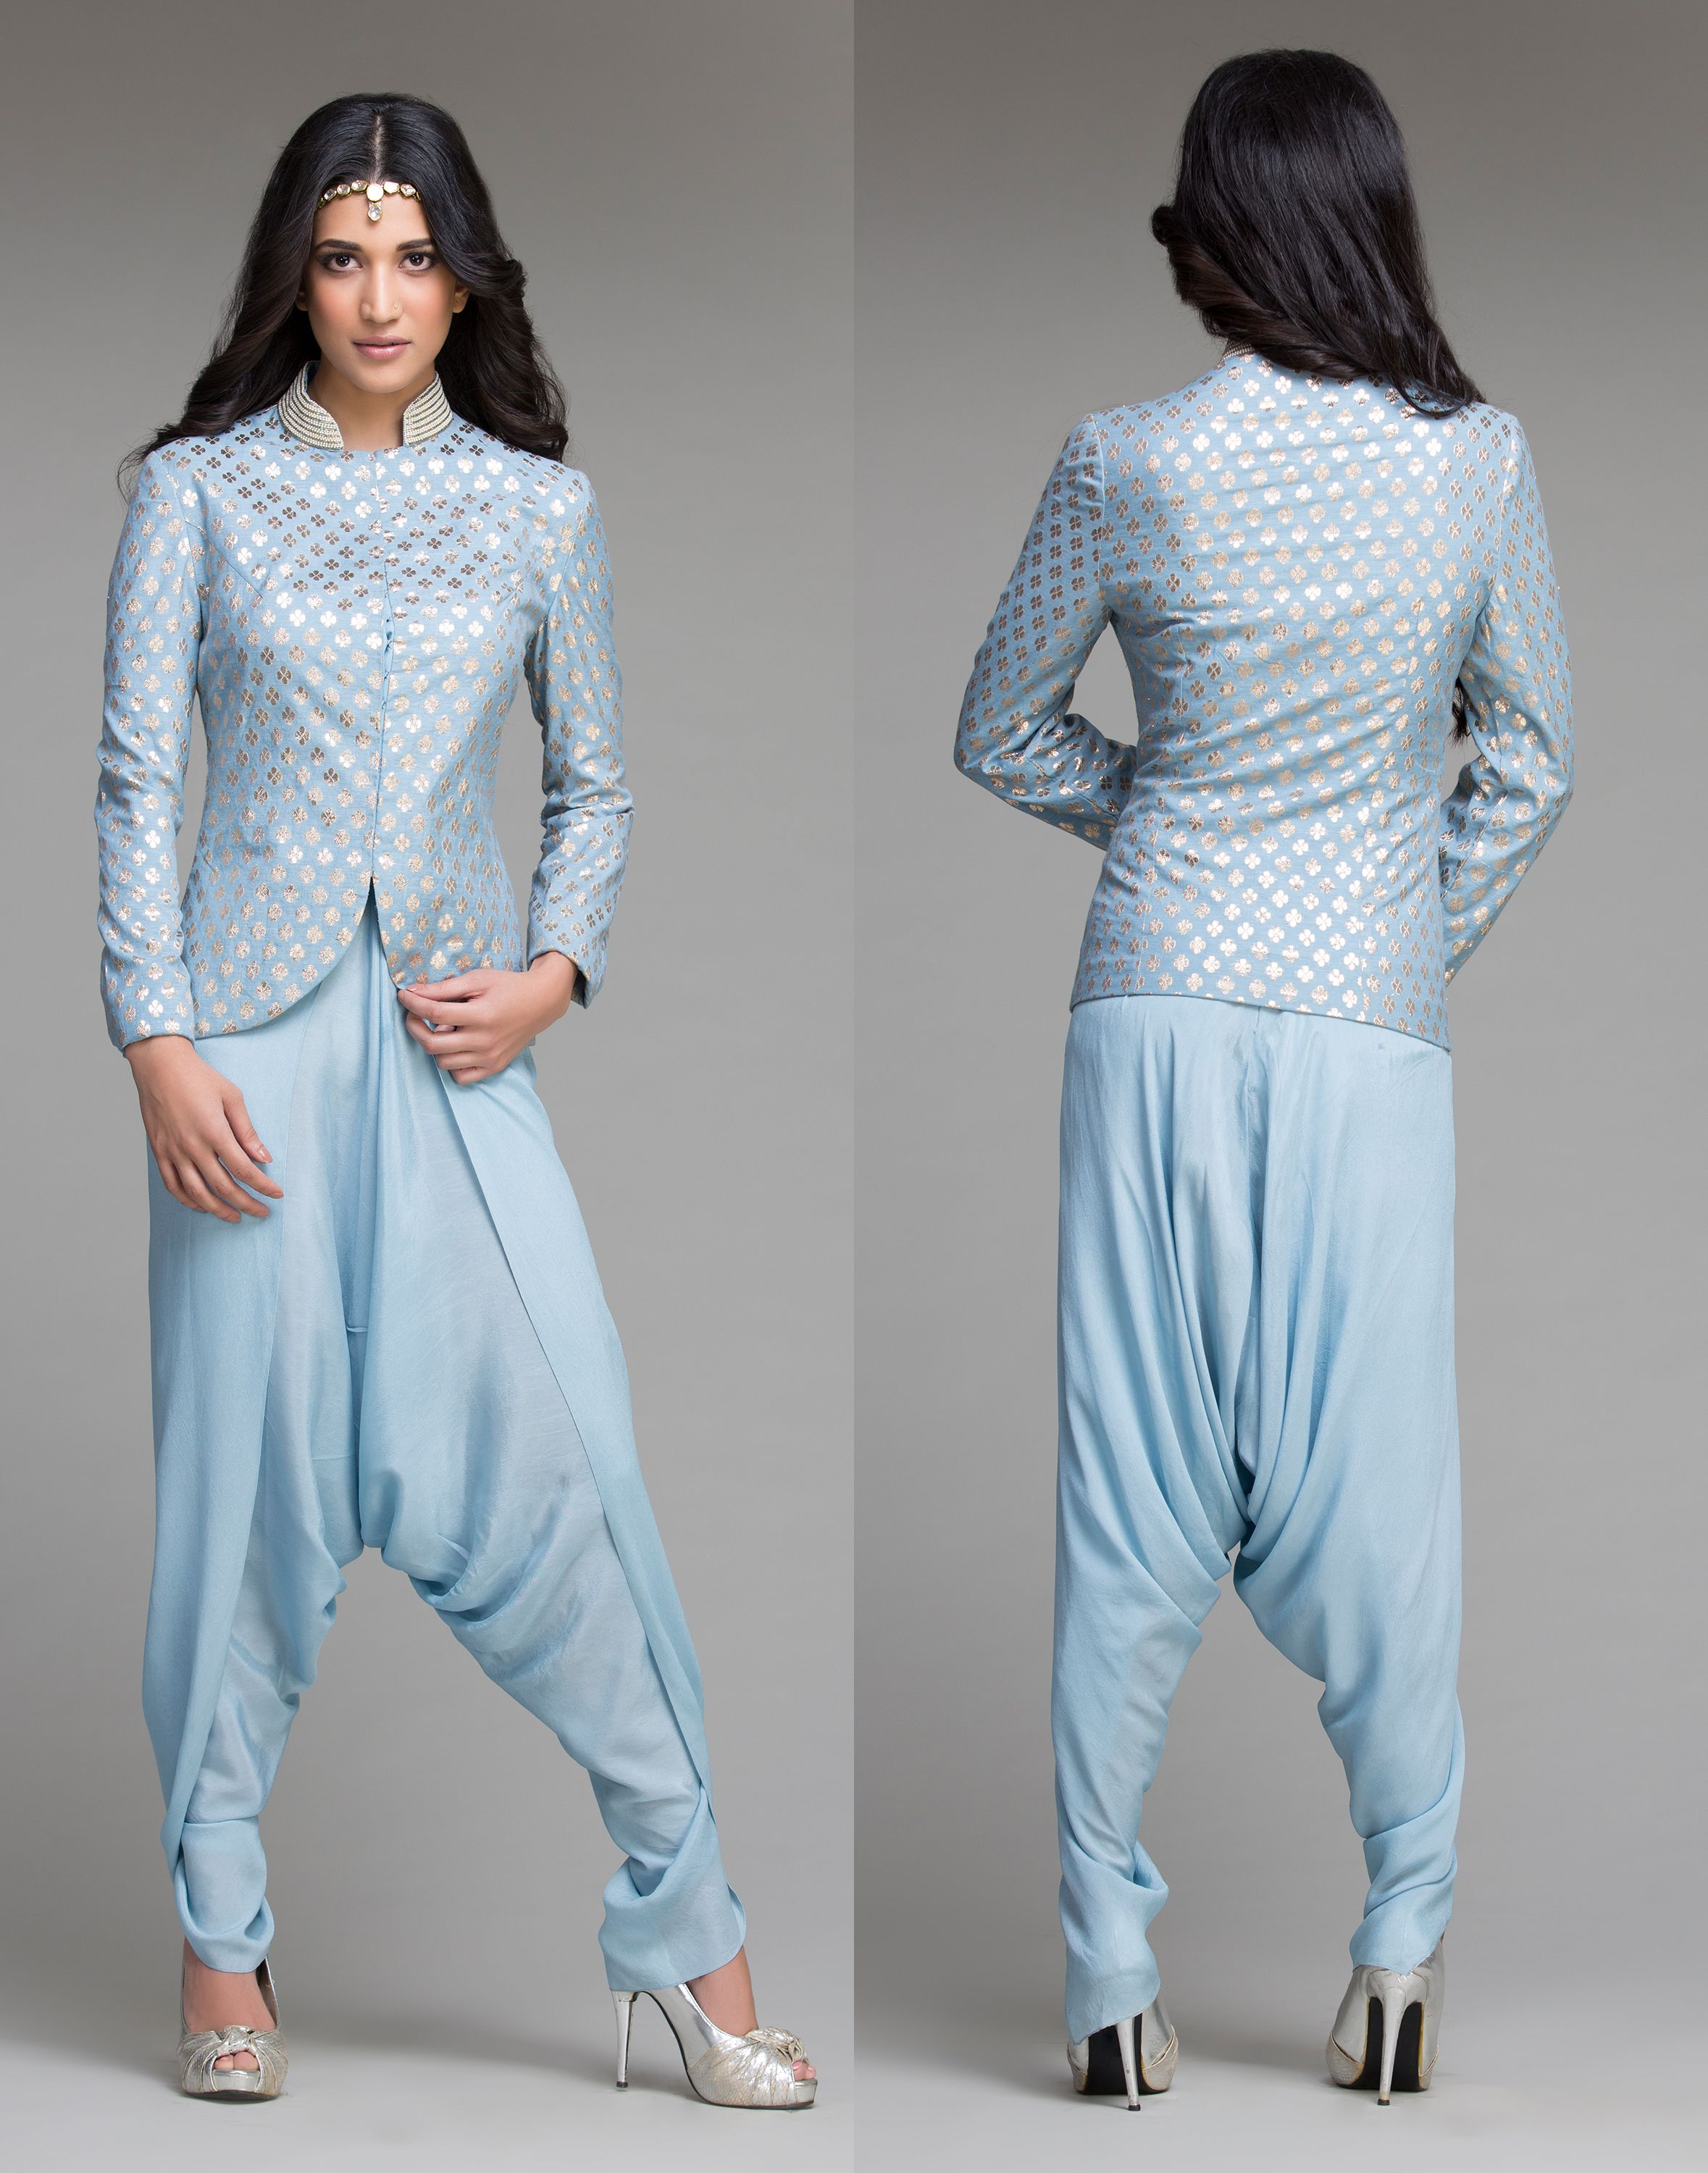 EMBROIDERED SUMMER BLUE JACKET WITH DHOTI PANTS | Eid it | Pinterest ...